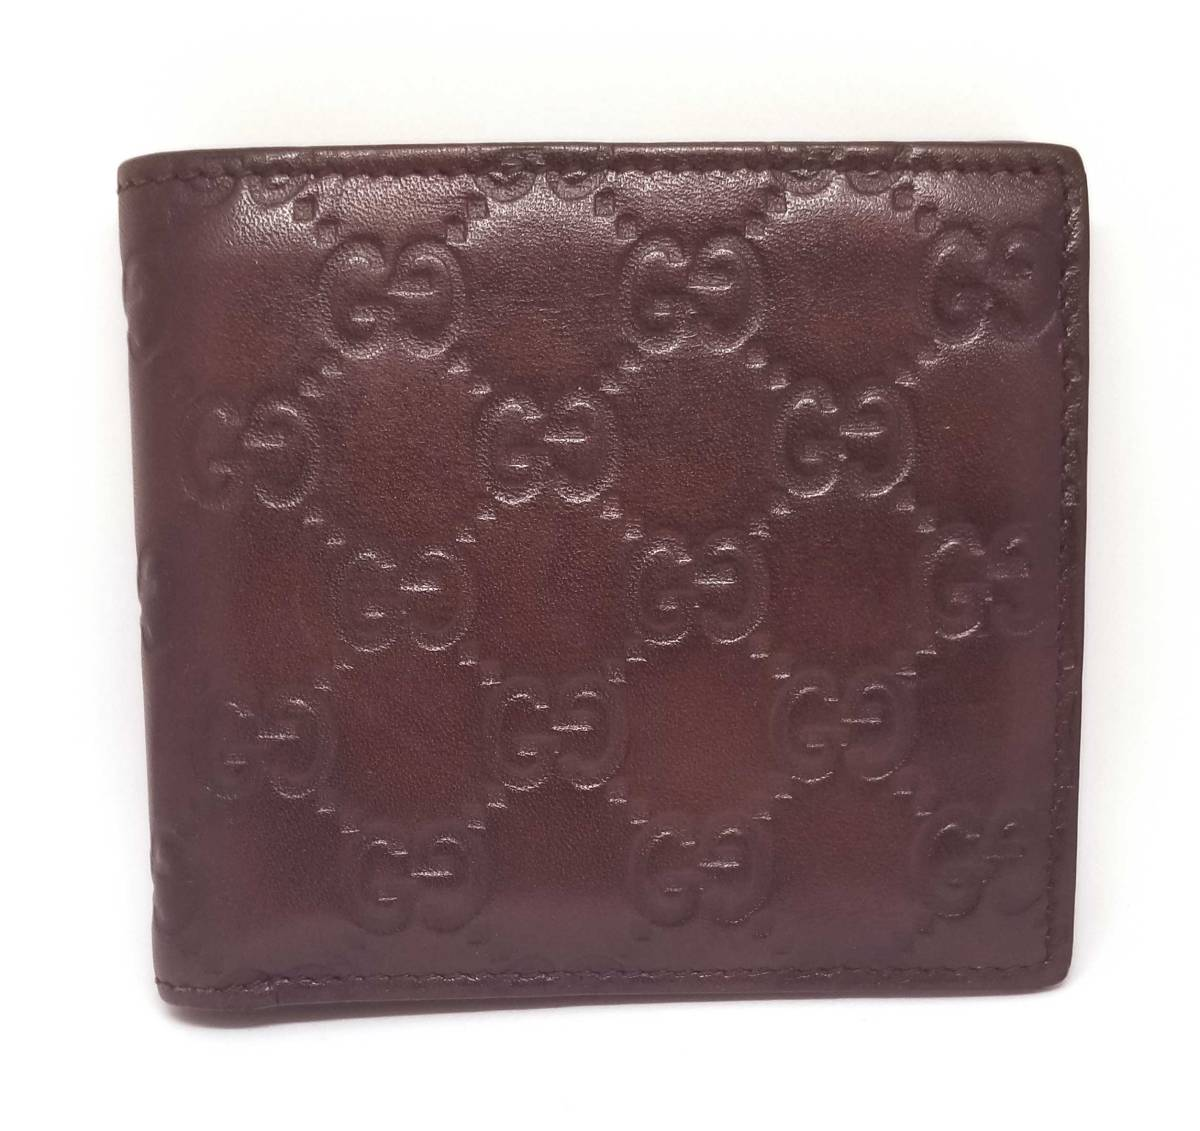 68c6e1e4c512c9 Gucci wallet men signature coin wallet GG Gucci sima leather folio dark  brown brown brown GUCCI ...